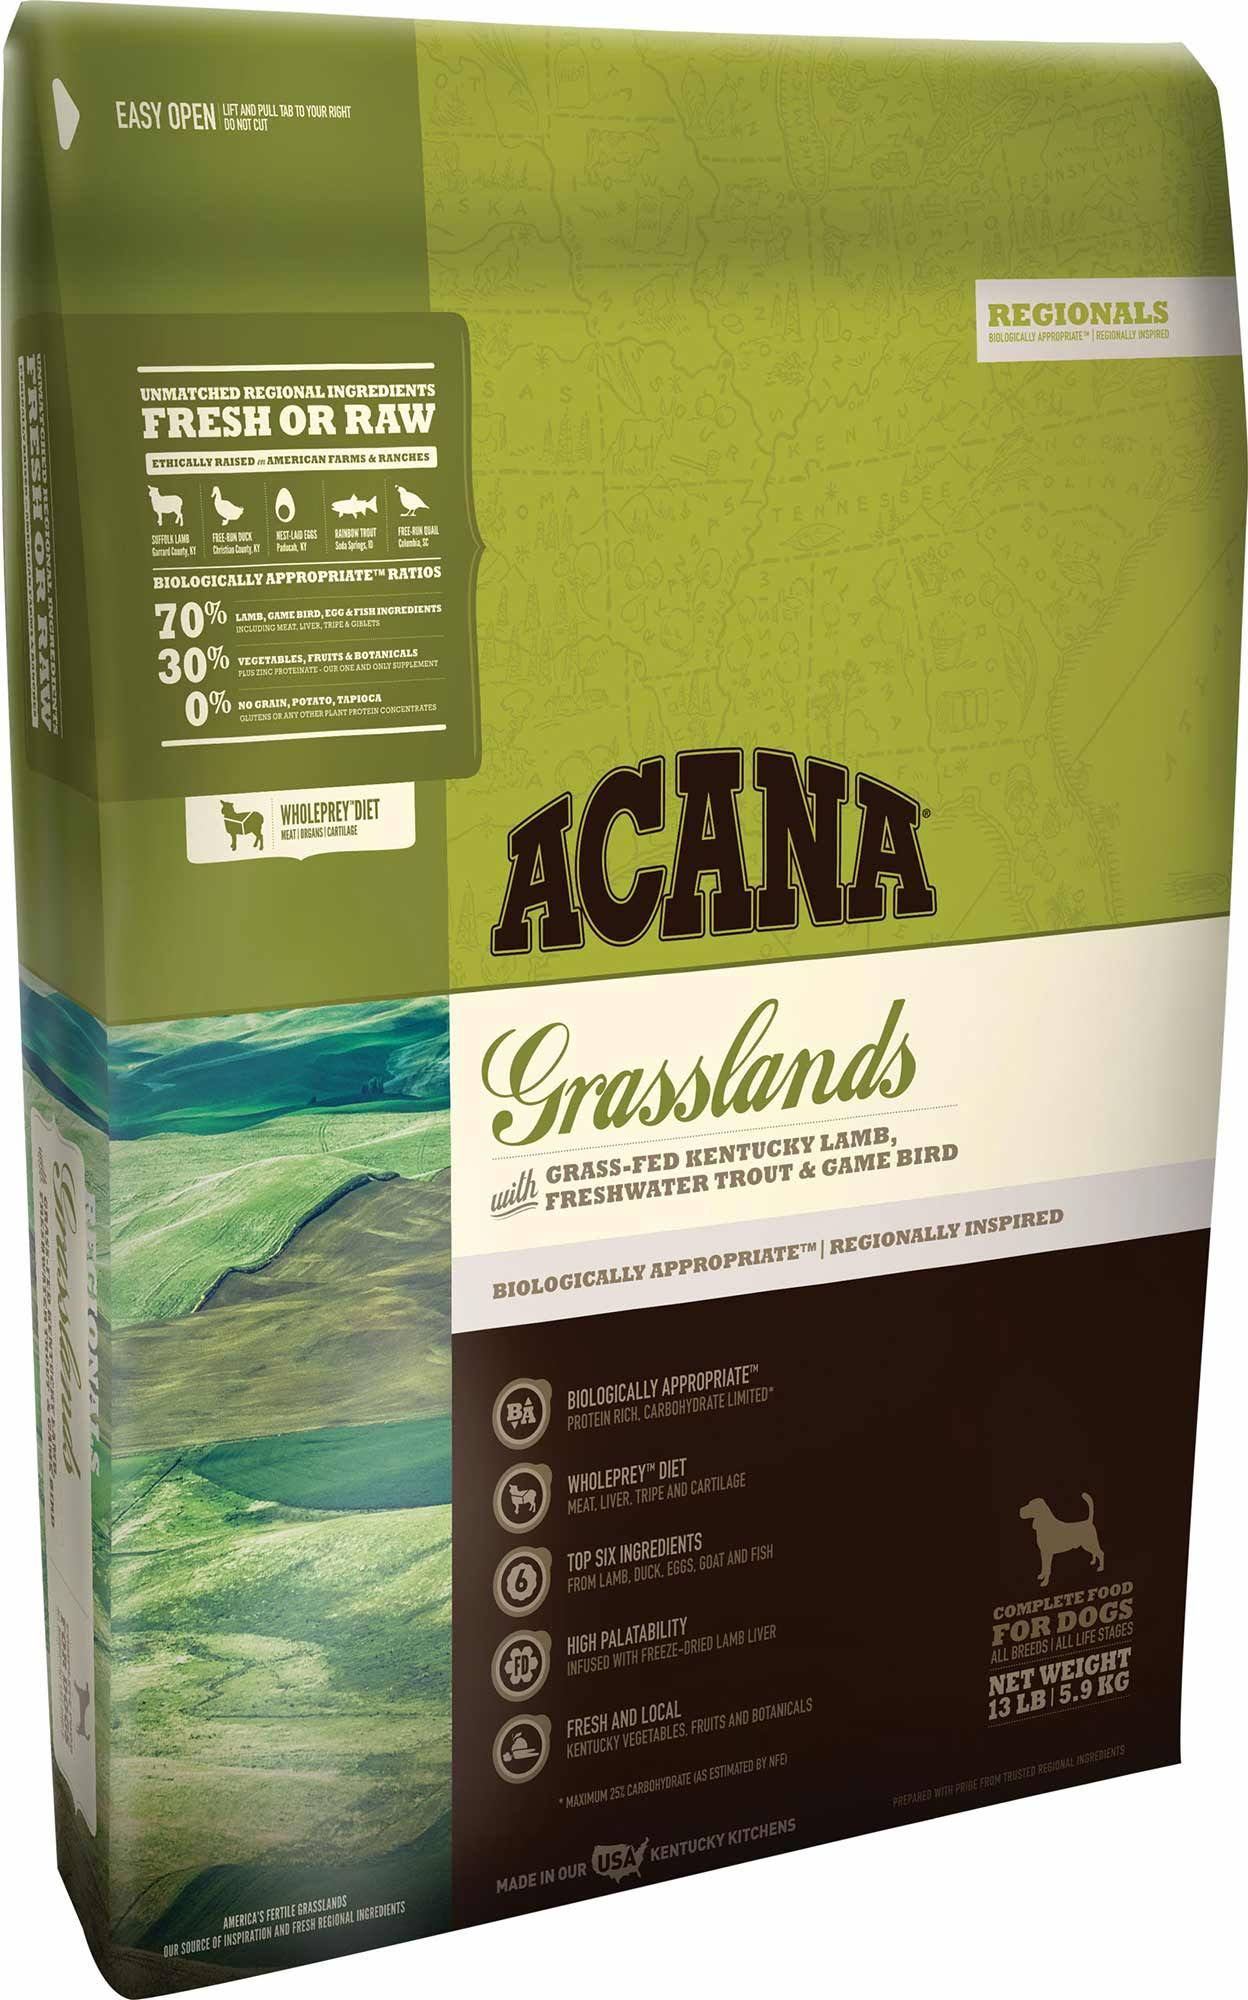 ACANA Regionals Grasslands Dry Dog Food, 25 lbs